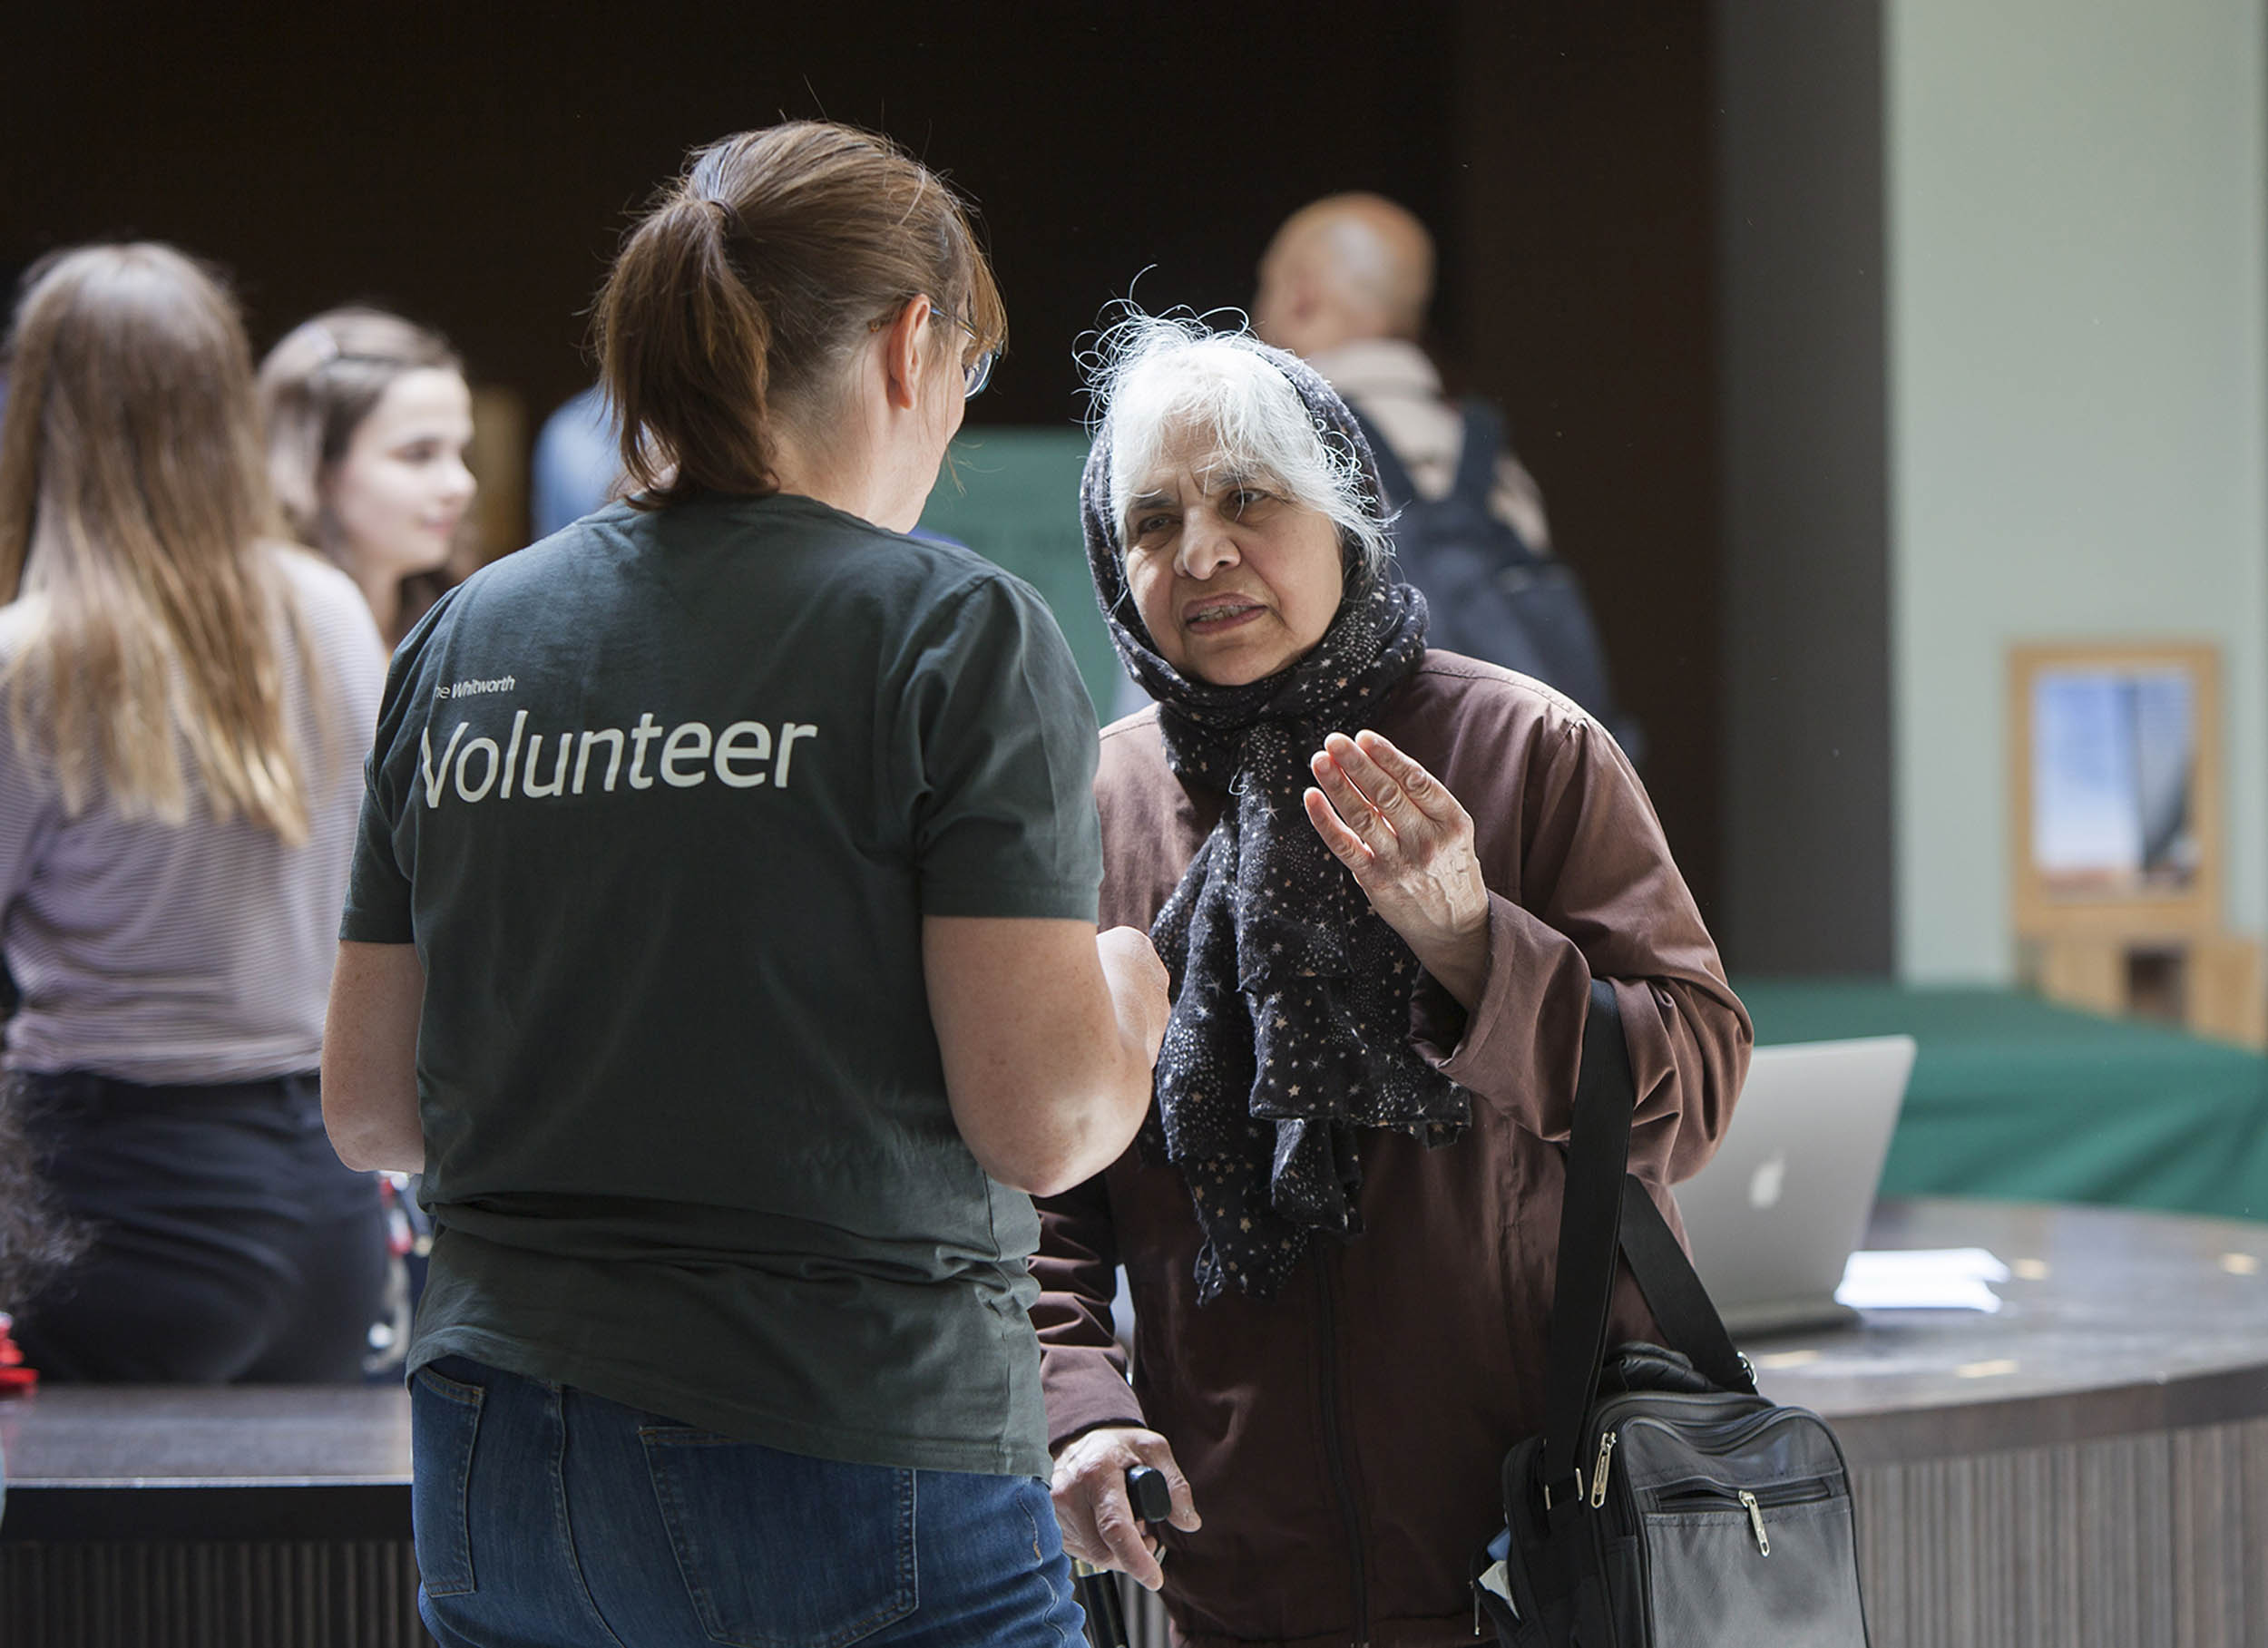 A documentary photograph of the a volunteer speaking to a visitor at an event.  Photography commissioned by Whitworth Art Gallery, Manchester